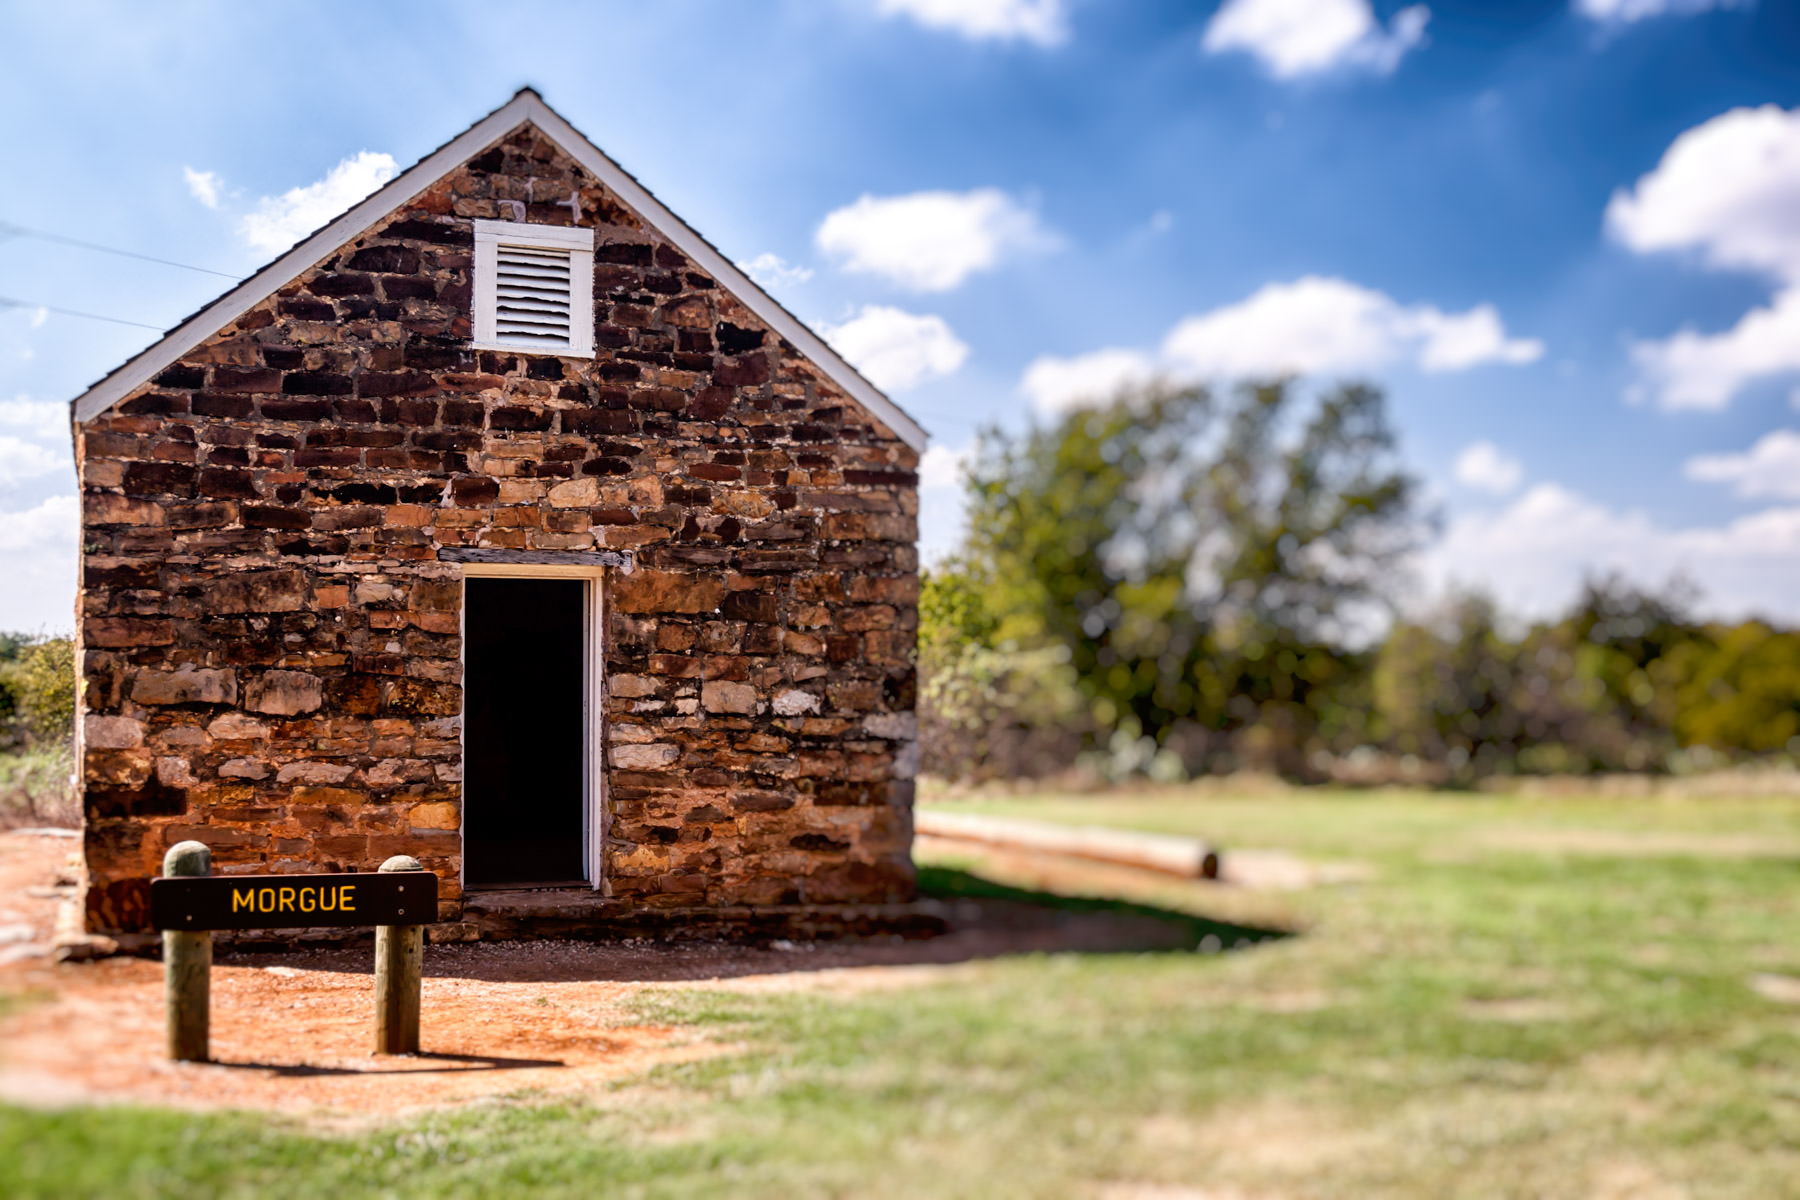 The morgue building at Fort Richardson State Park, Jacksboro, Texas.